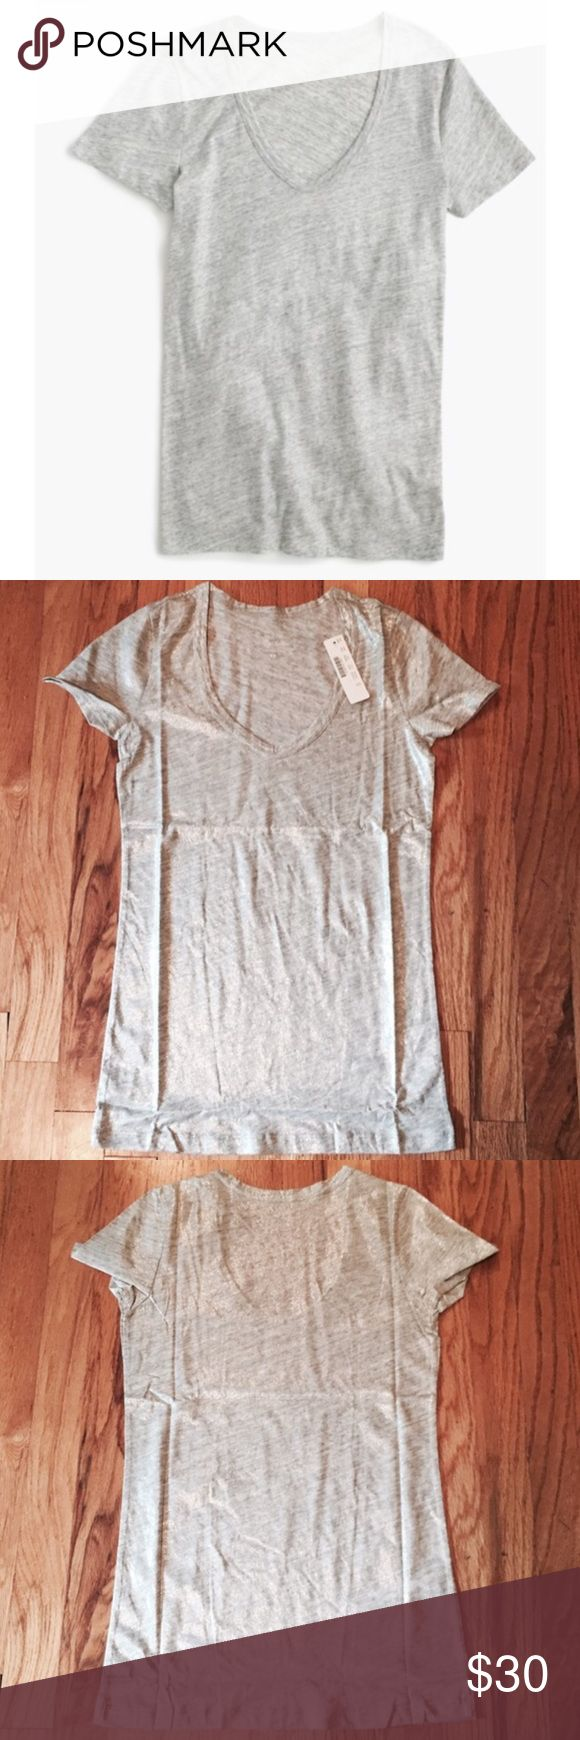 NWT J Crew Metallic Tee New with tags. Metallic silver vintage cotton scoop neck tshirt.   no trades | offer button only please J. Crew Tops Tees - Short Sleeve